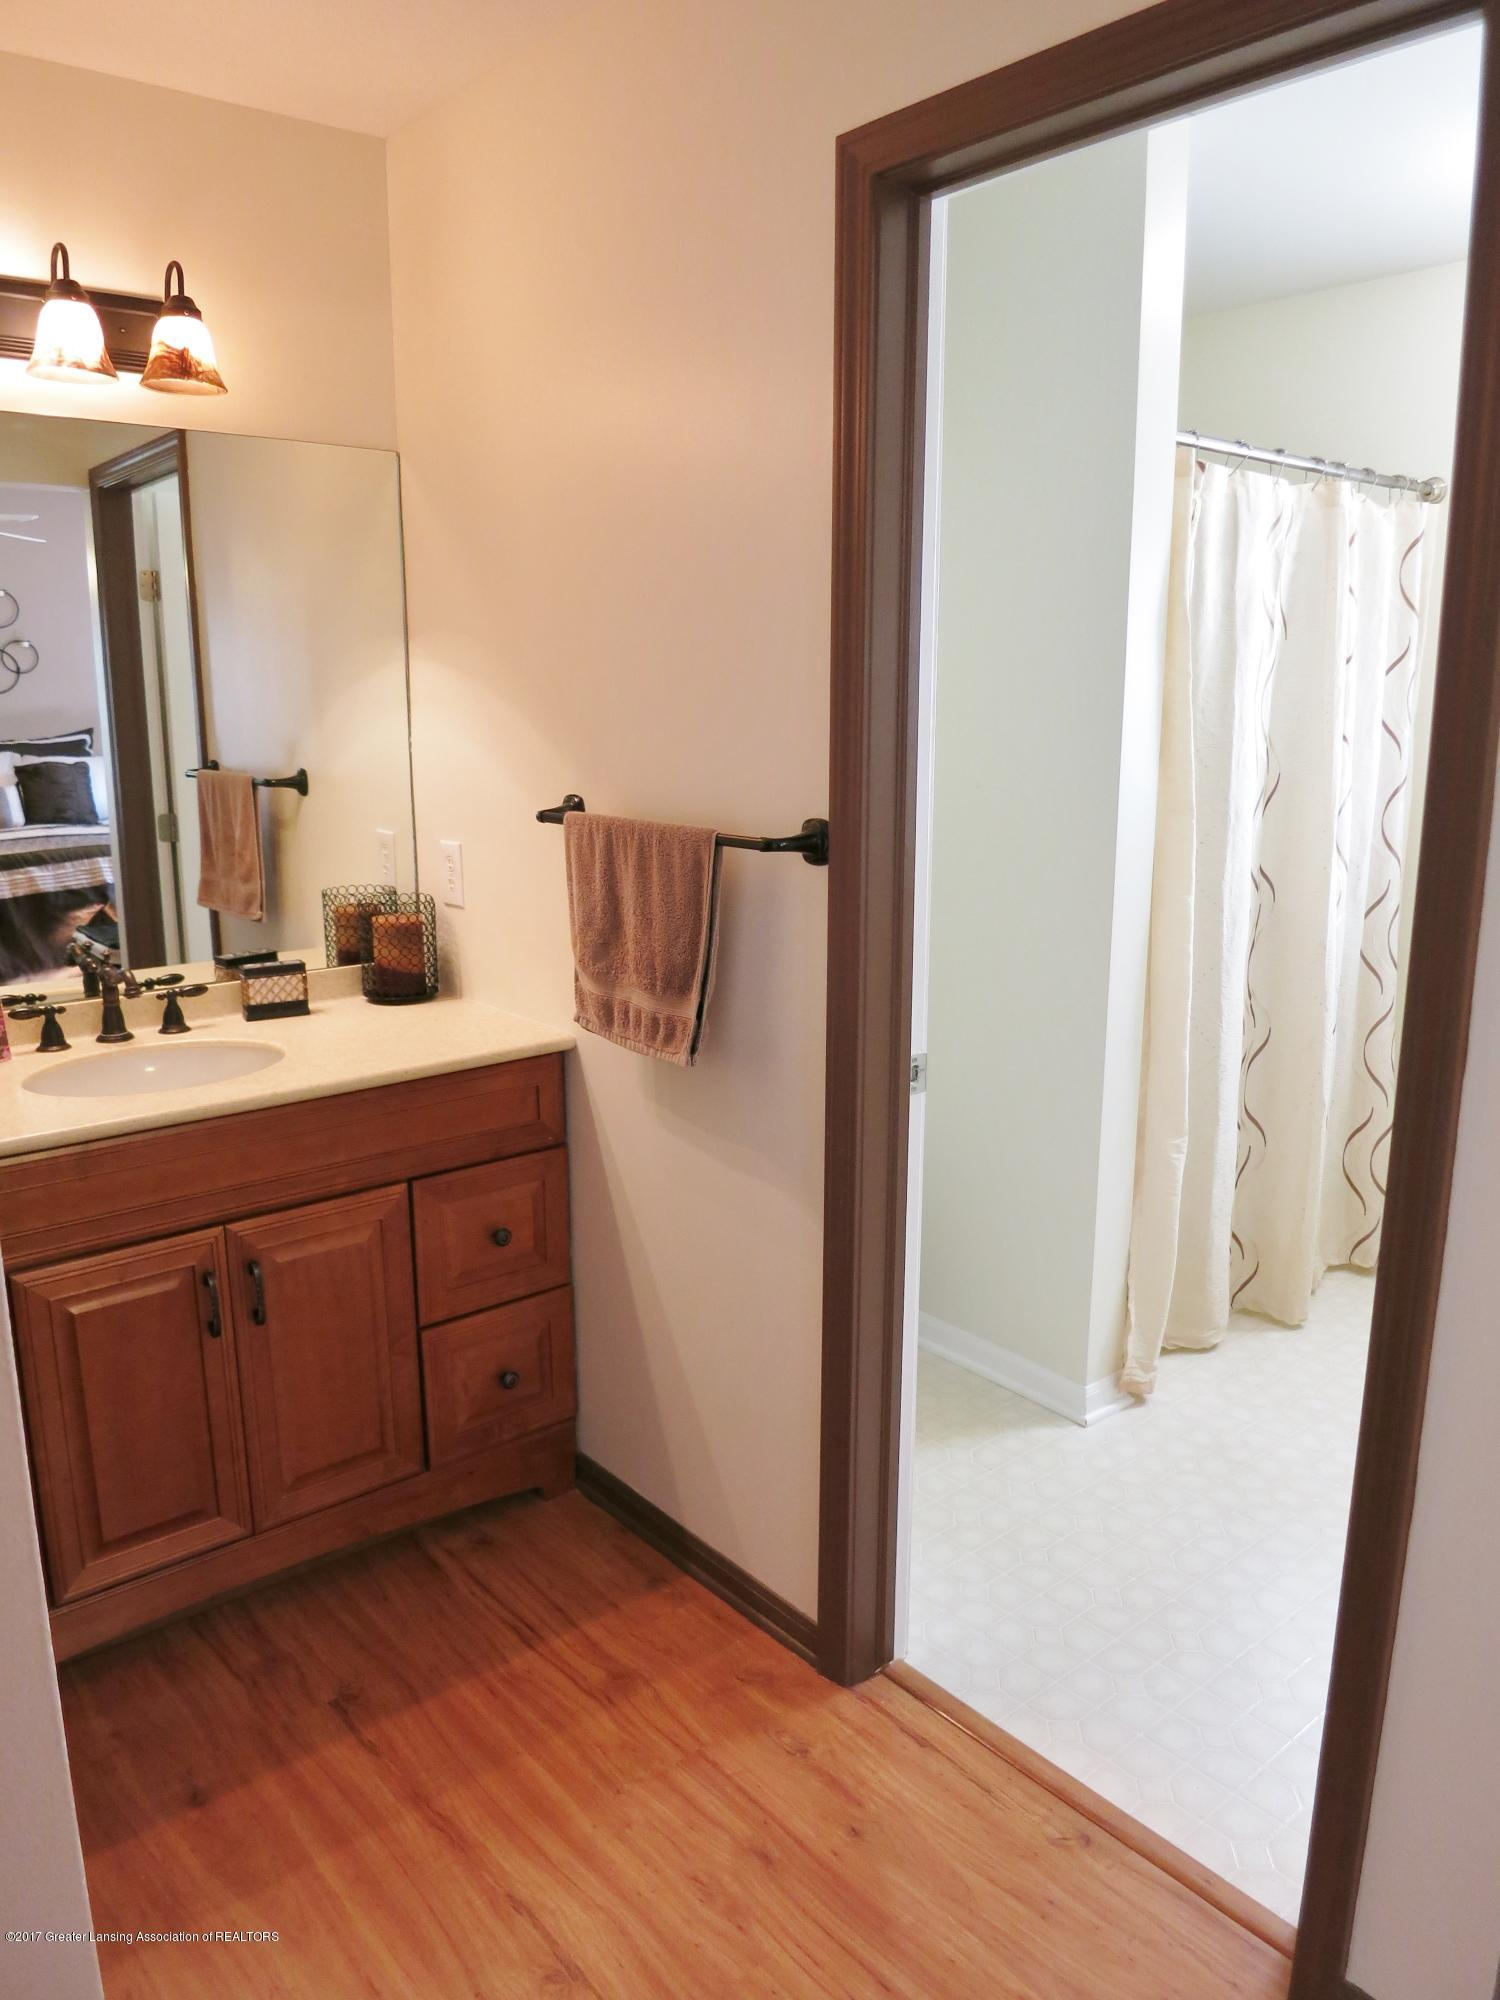 2785 River Pointe Dr - IMG_4988 - 13